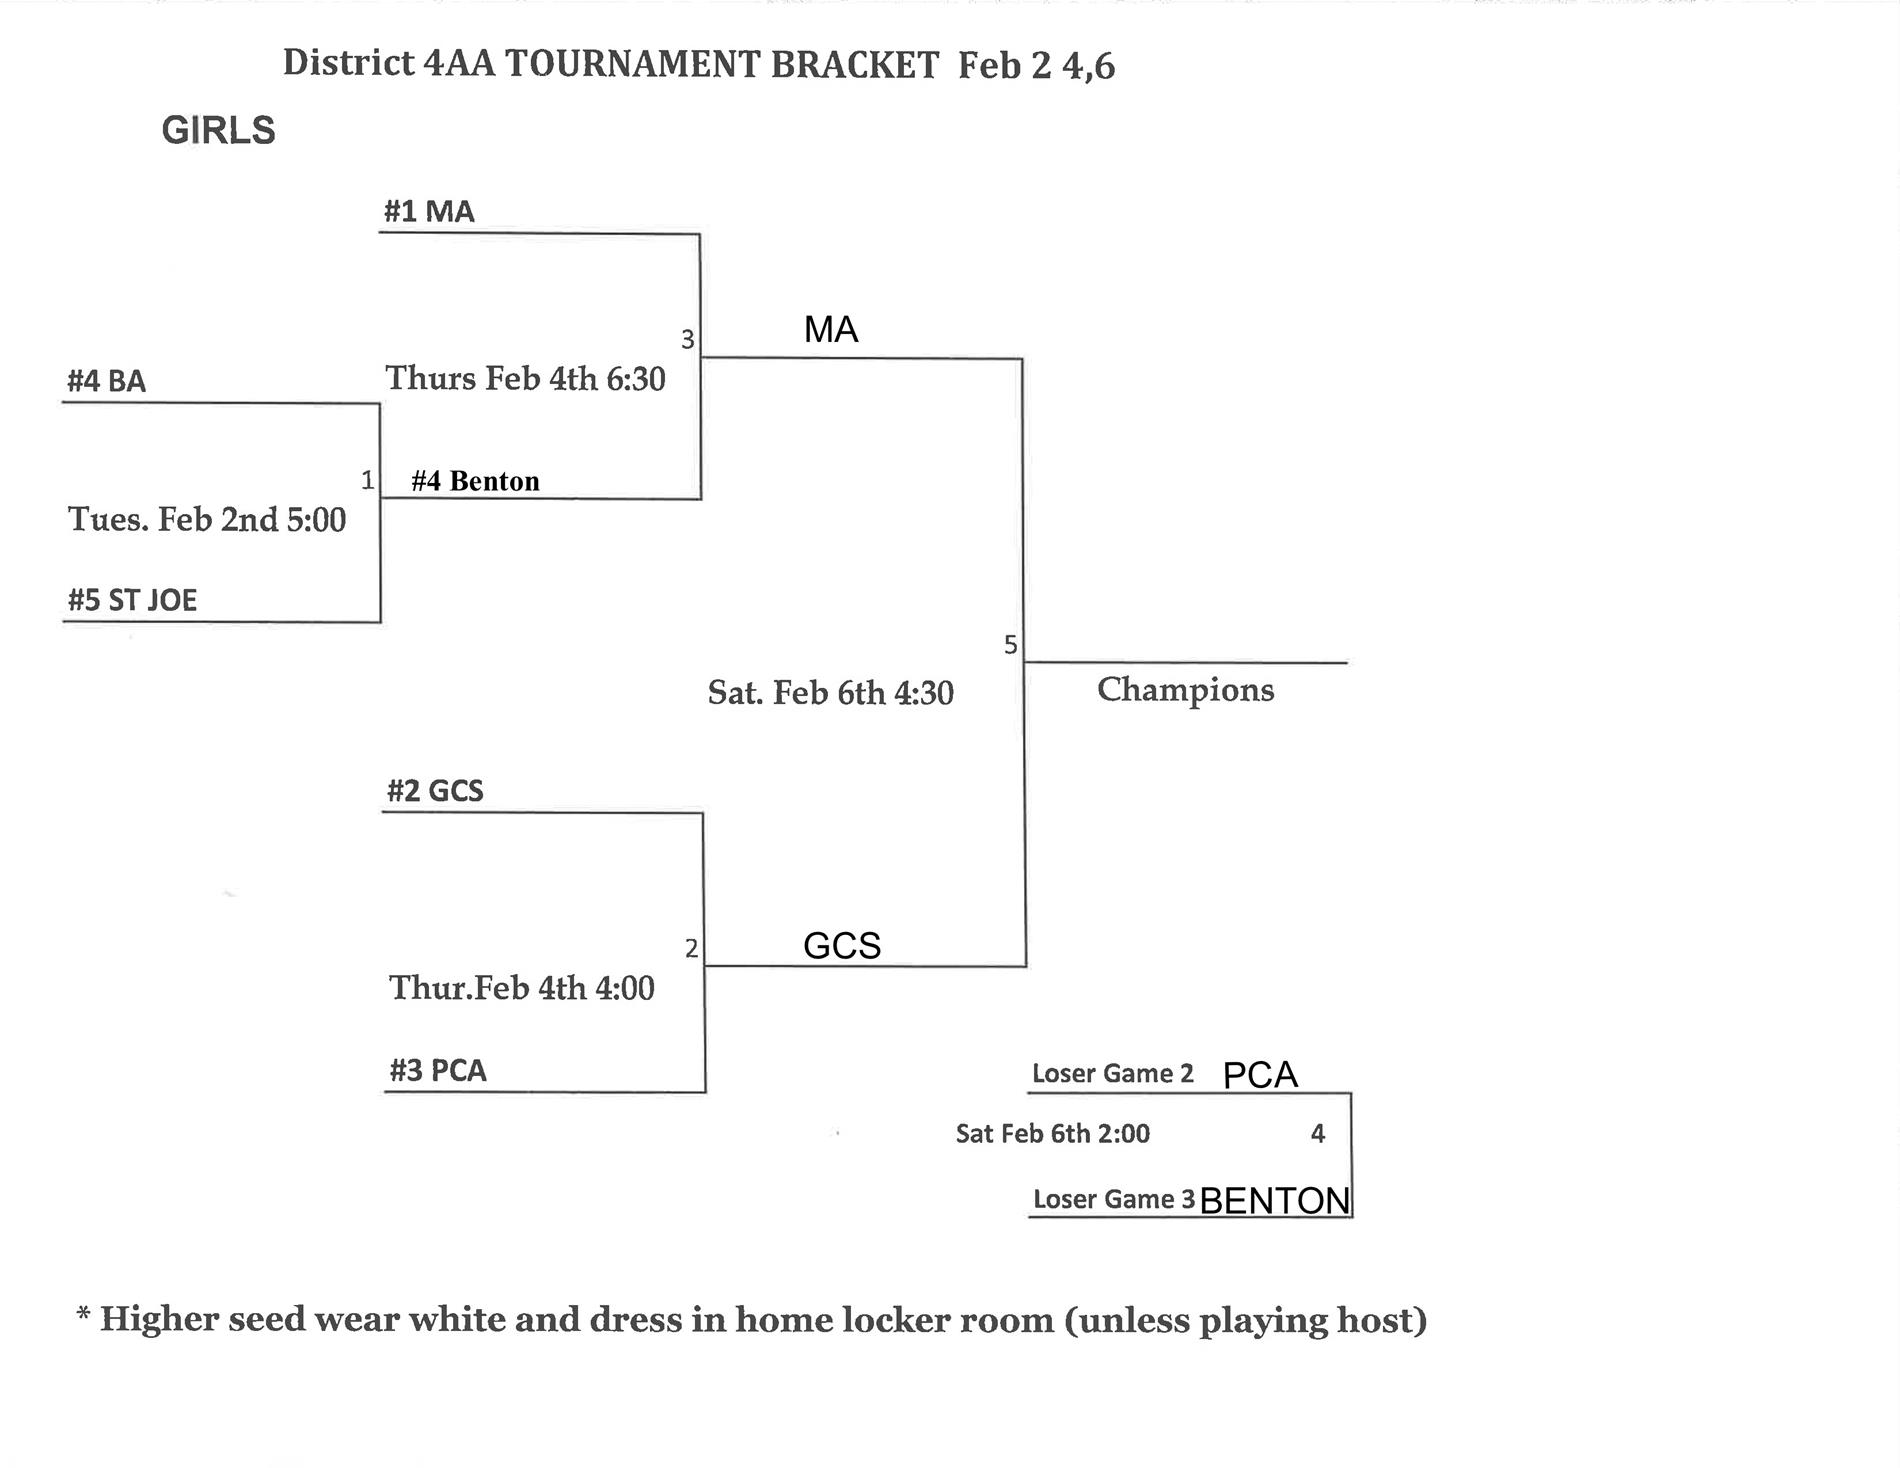 District 4AA Girls Tournament Bracket